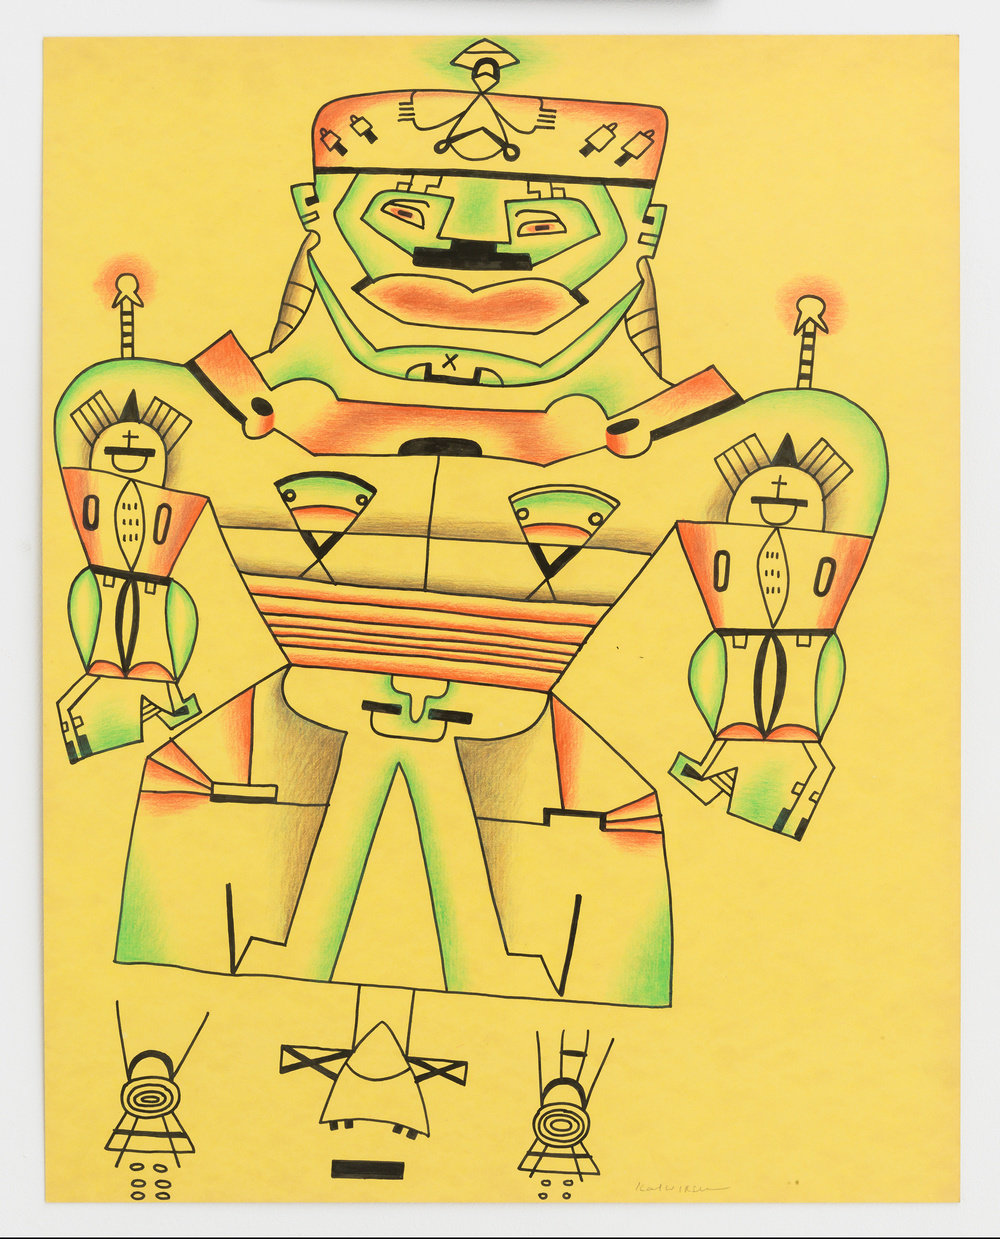 An ink and color pencil on yellow paper drawing by Karl Wirsum of an abstract figure with sharp outlines, with touches of soft green, red and grey.